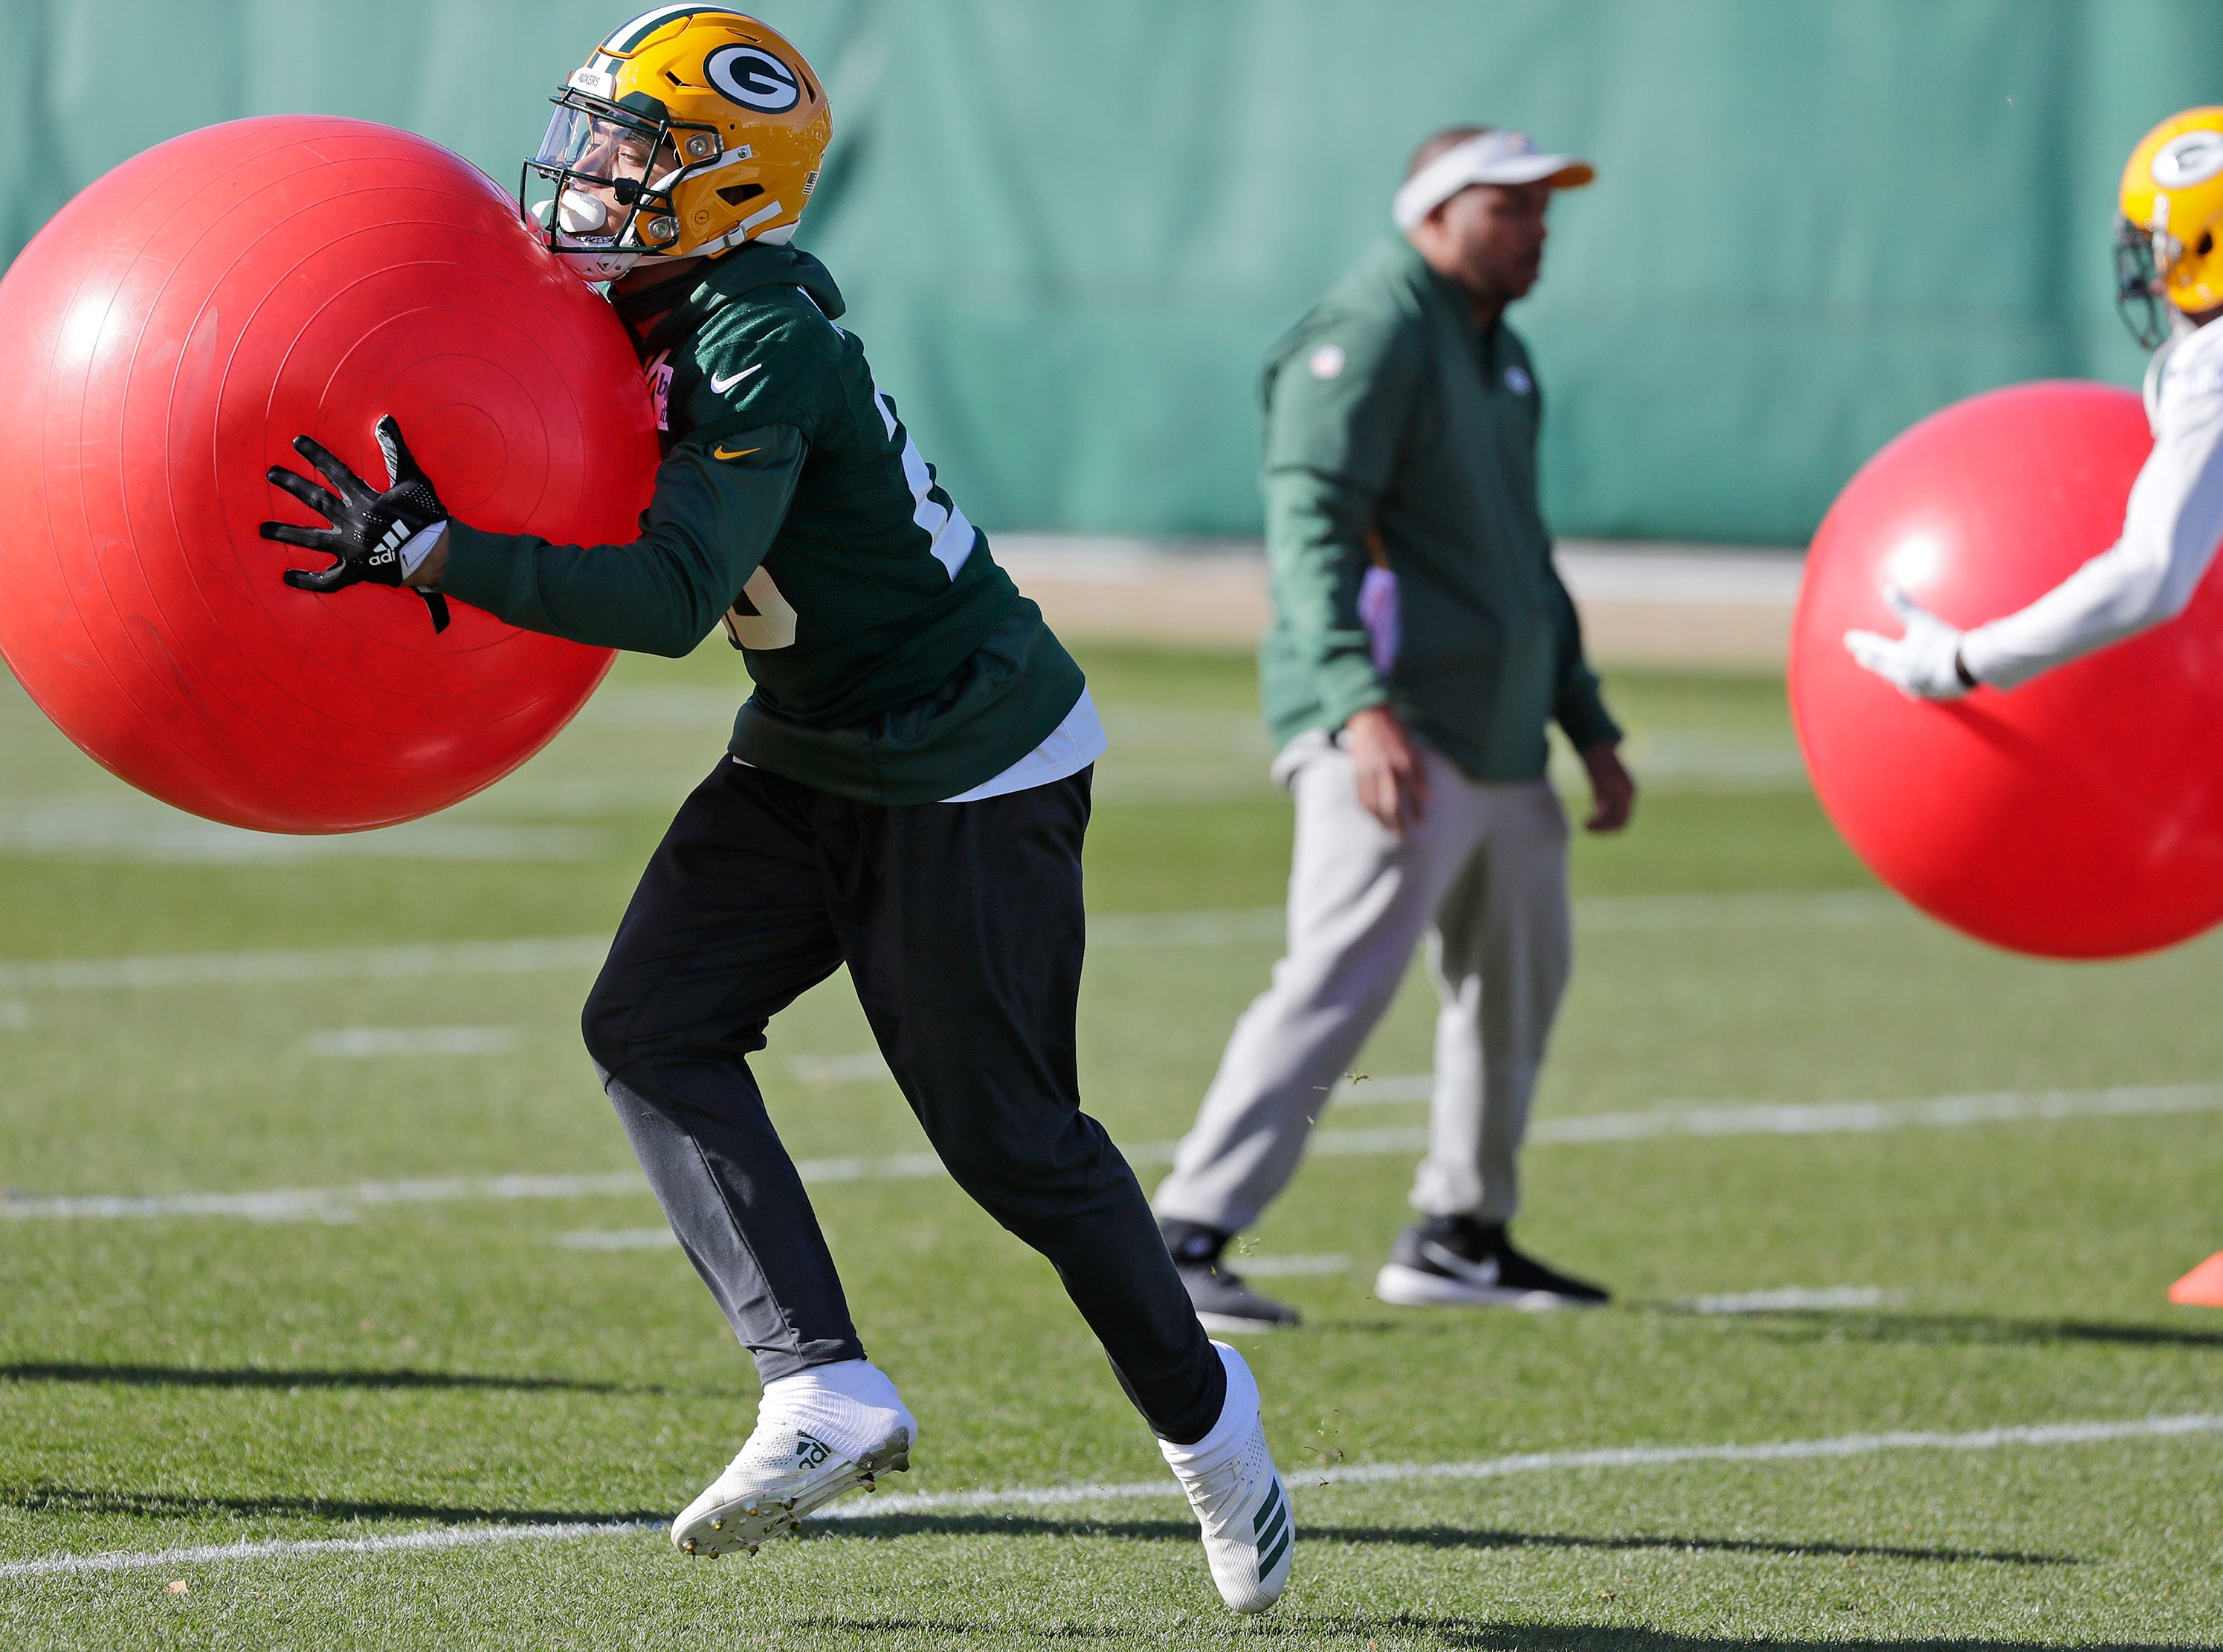 Green Bay Packers cornerback Jaire Alexander (23) runs through a tackling drill during practice at Ray Nitschke Field on Wednesday, October 31, 2018 in Ashwaubenon, Wis.